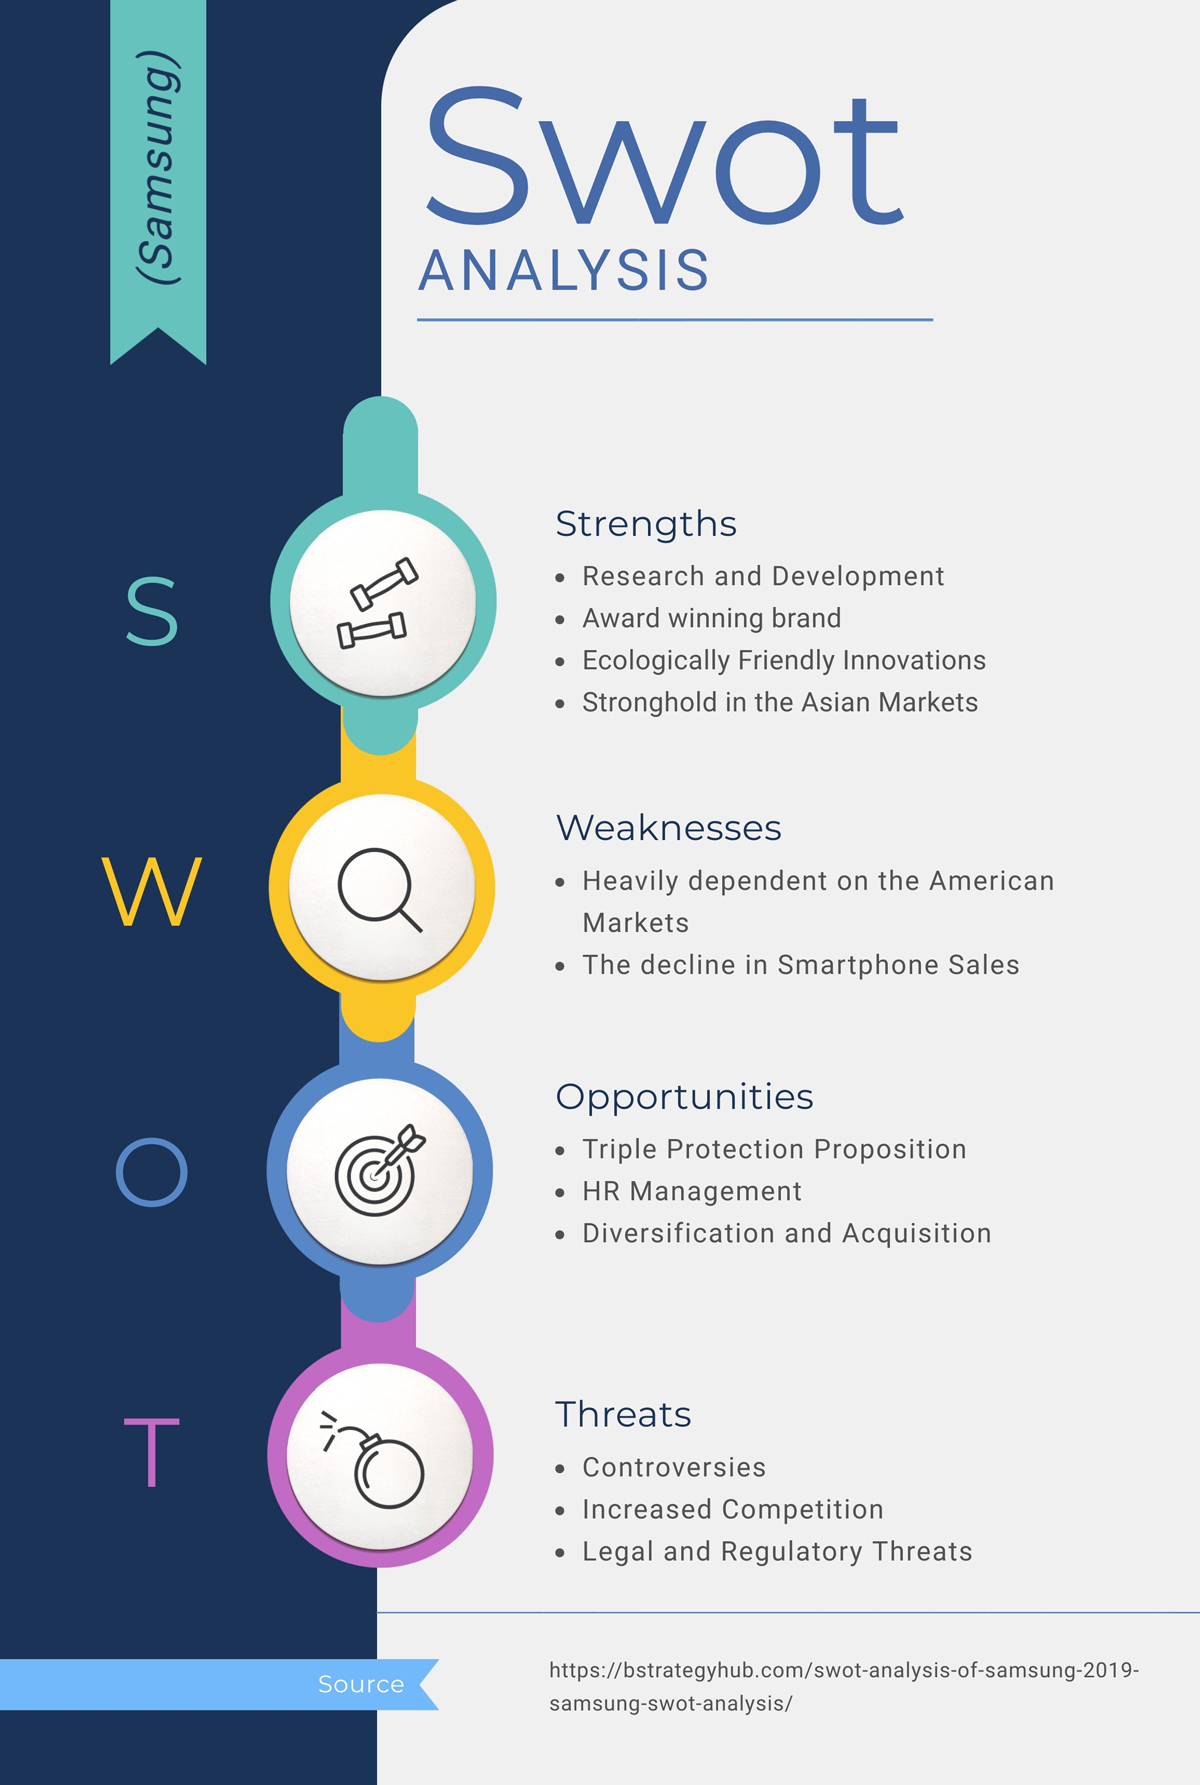 A SWOT analysis infographic template available in Visme.